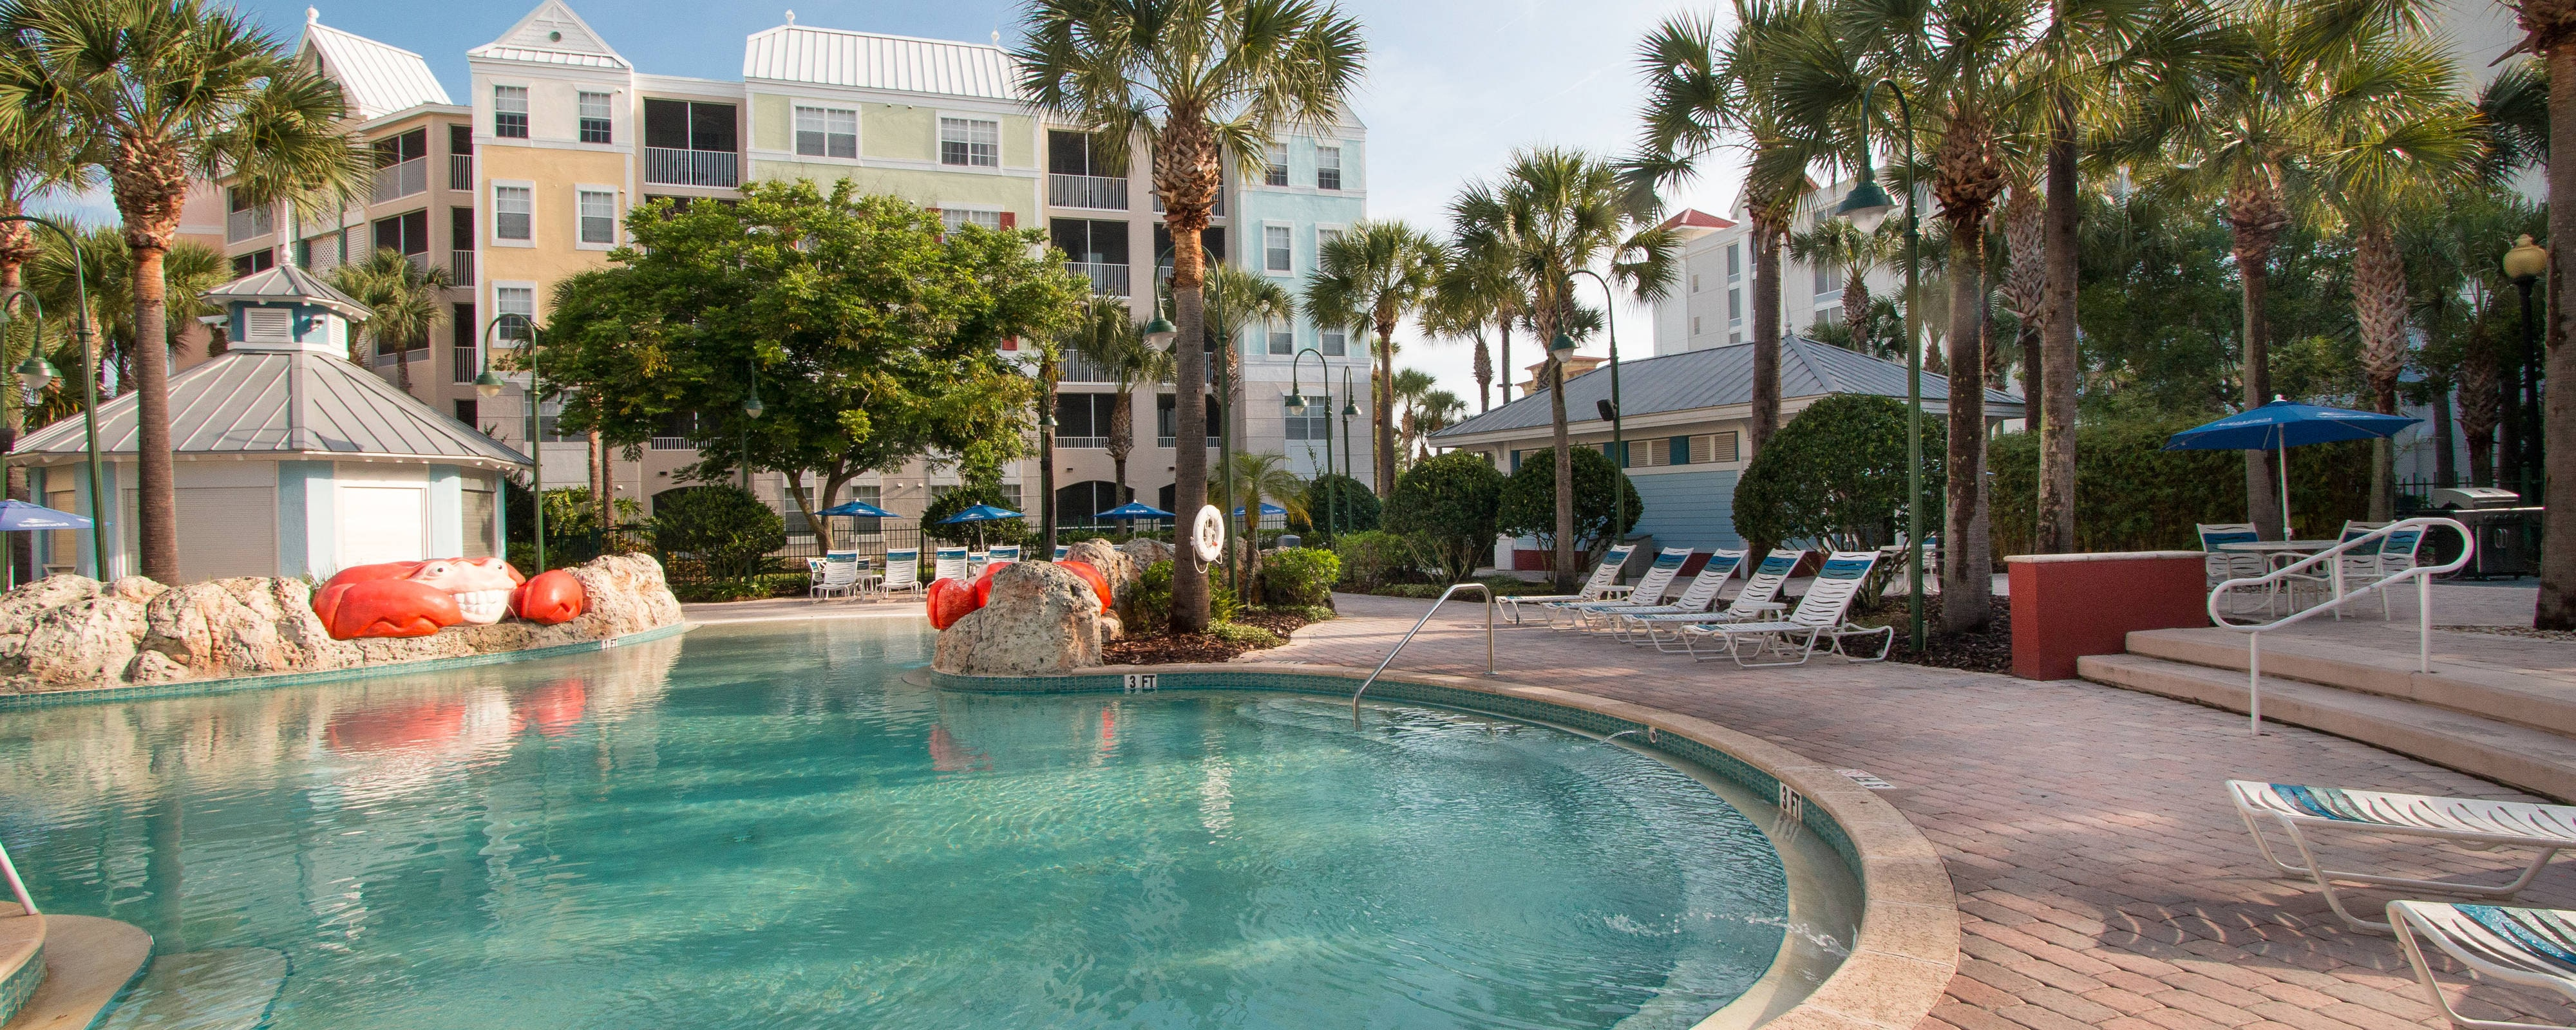 Orlando Kissimmee Outdoor Pool